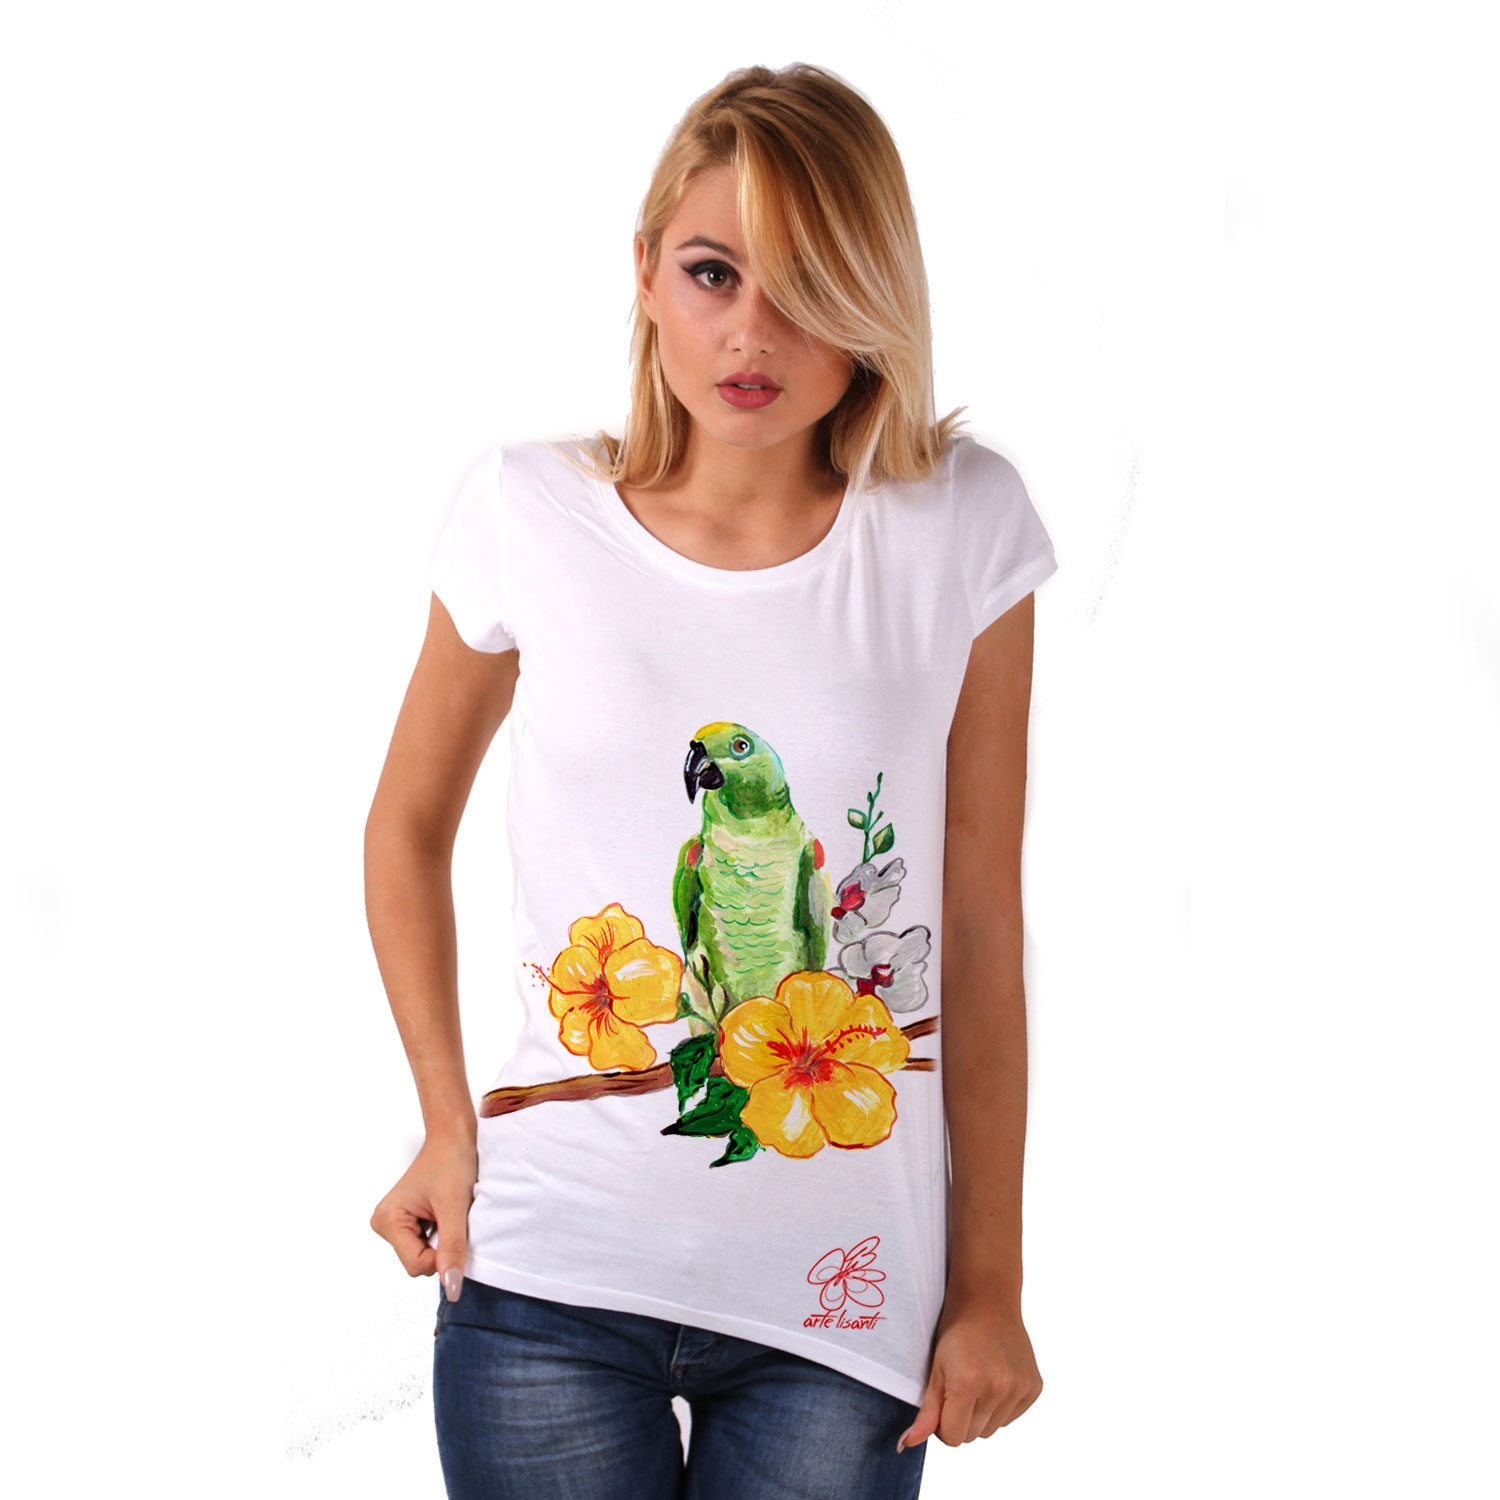 Hand-painted Jersey - Green parrot